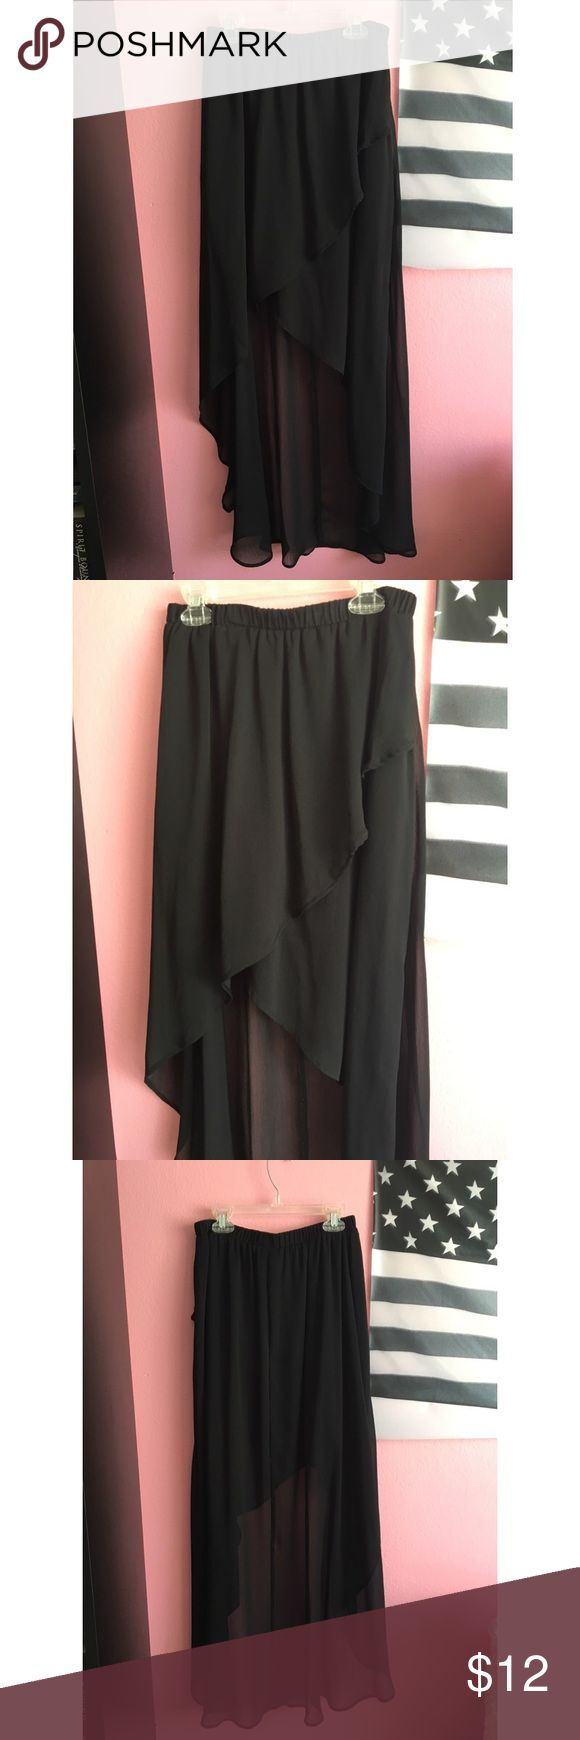 Sassy Black High Low Skirt This adorable layered skirt has only been worn once and is in perfect condition! Great for any casual or semi casual occasion! Xhilaration Skirts High Low